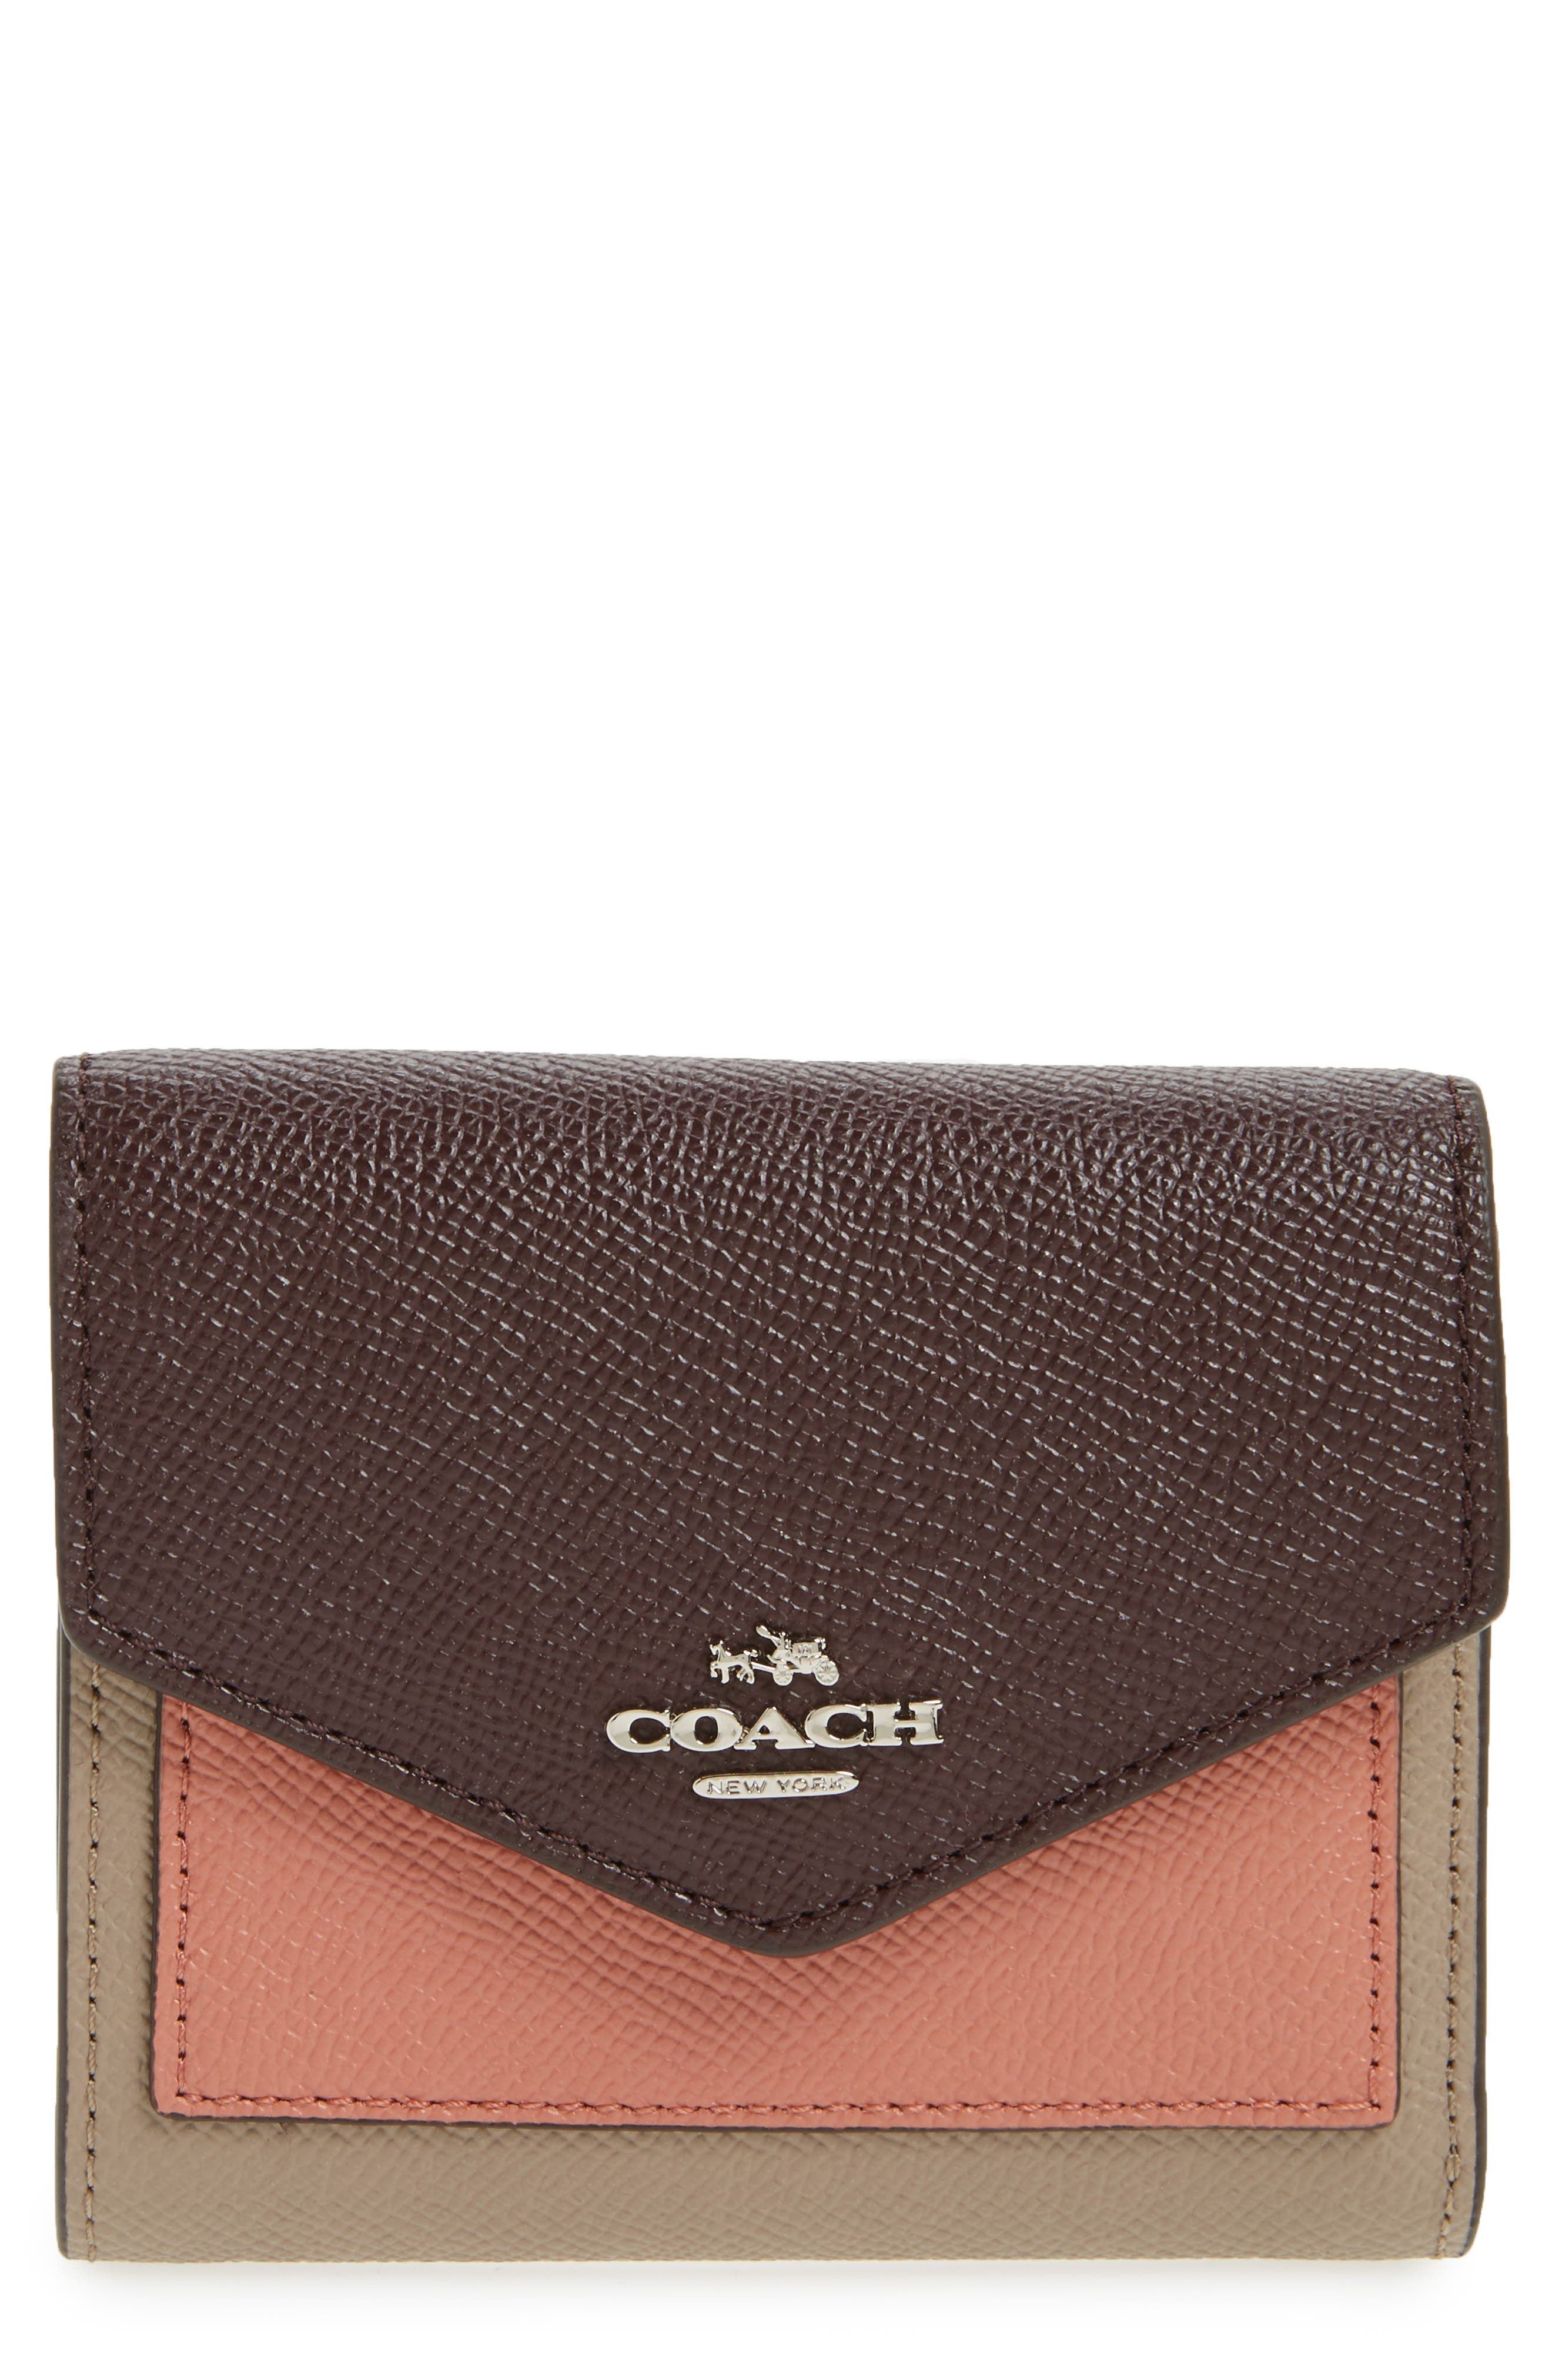 Main Image - COACH Small Colorblock Calfskin Leather Wallet